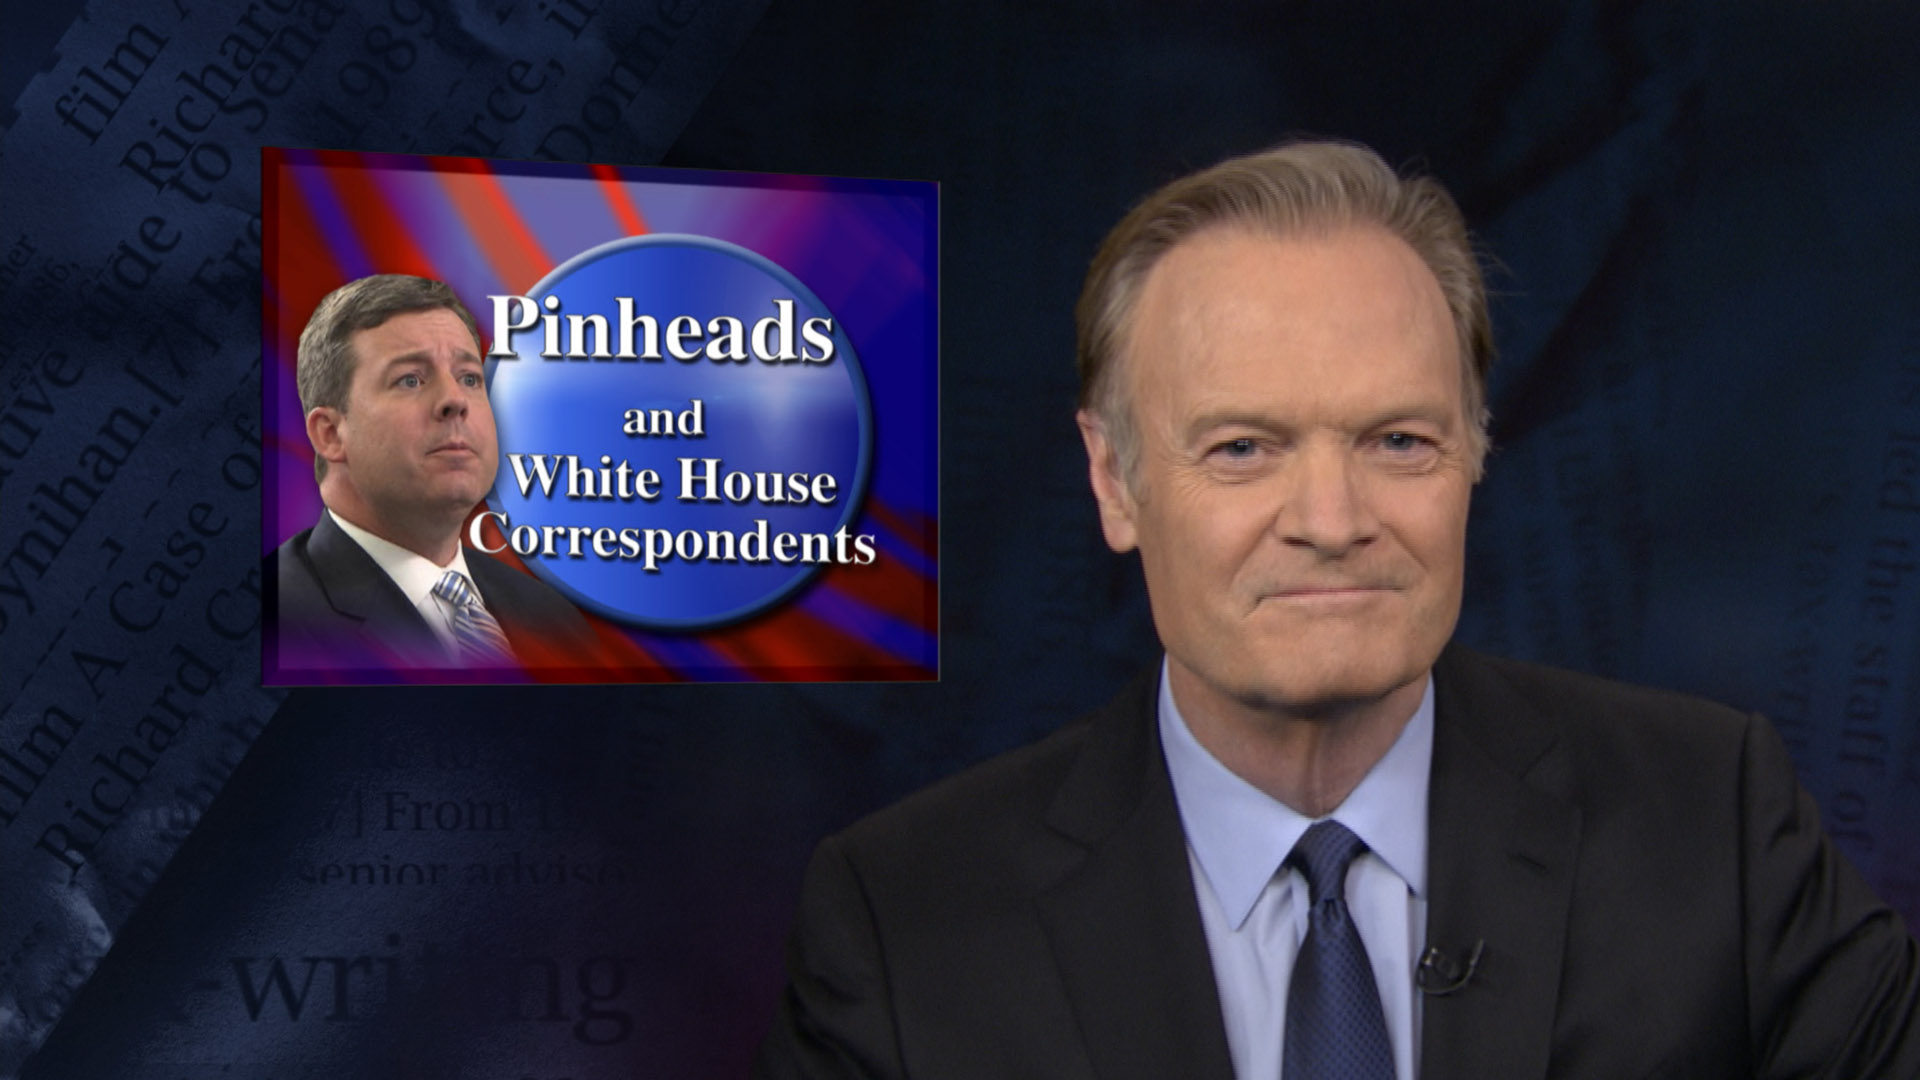 Pinheads and White House correspondents